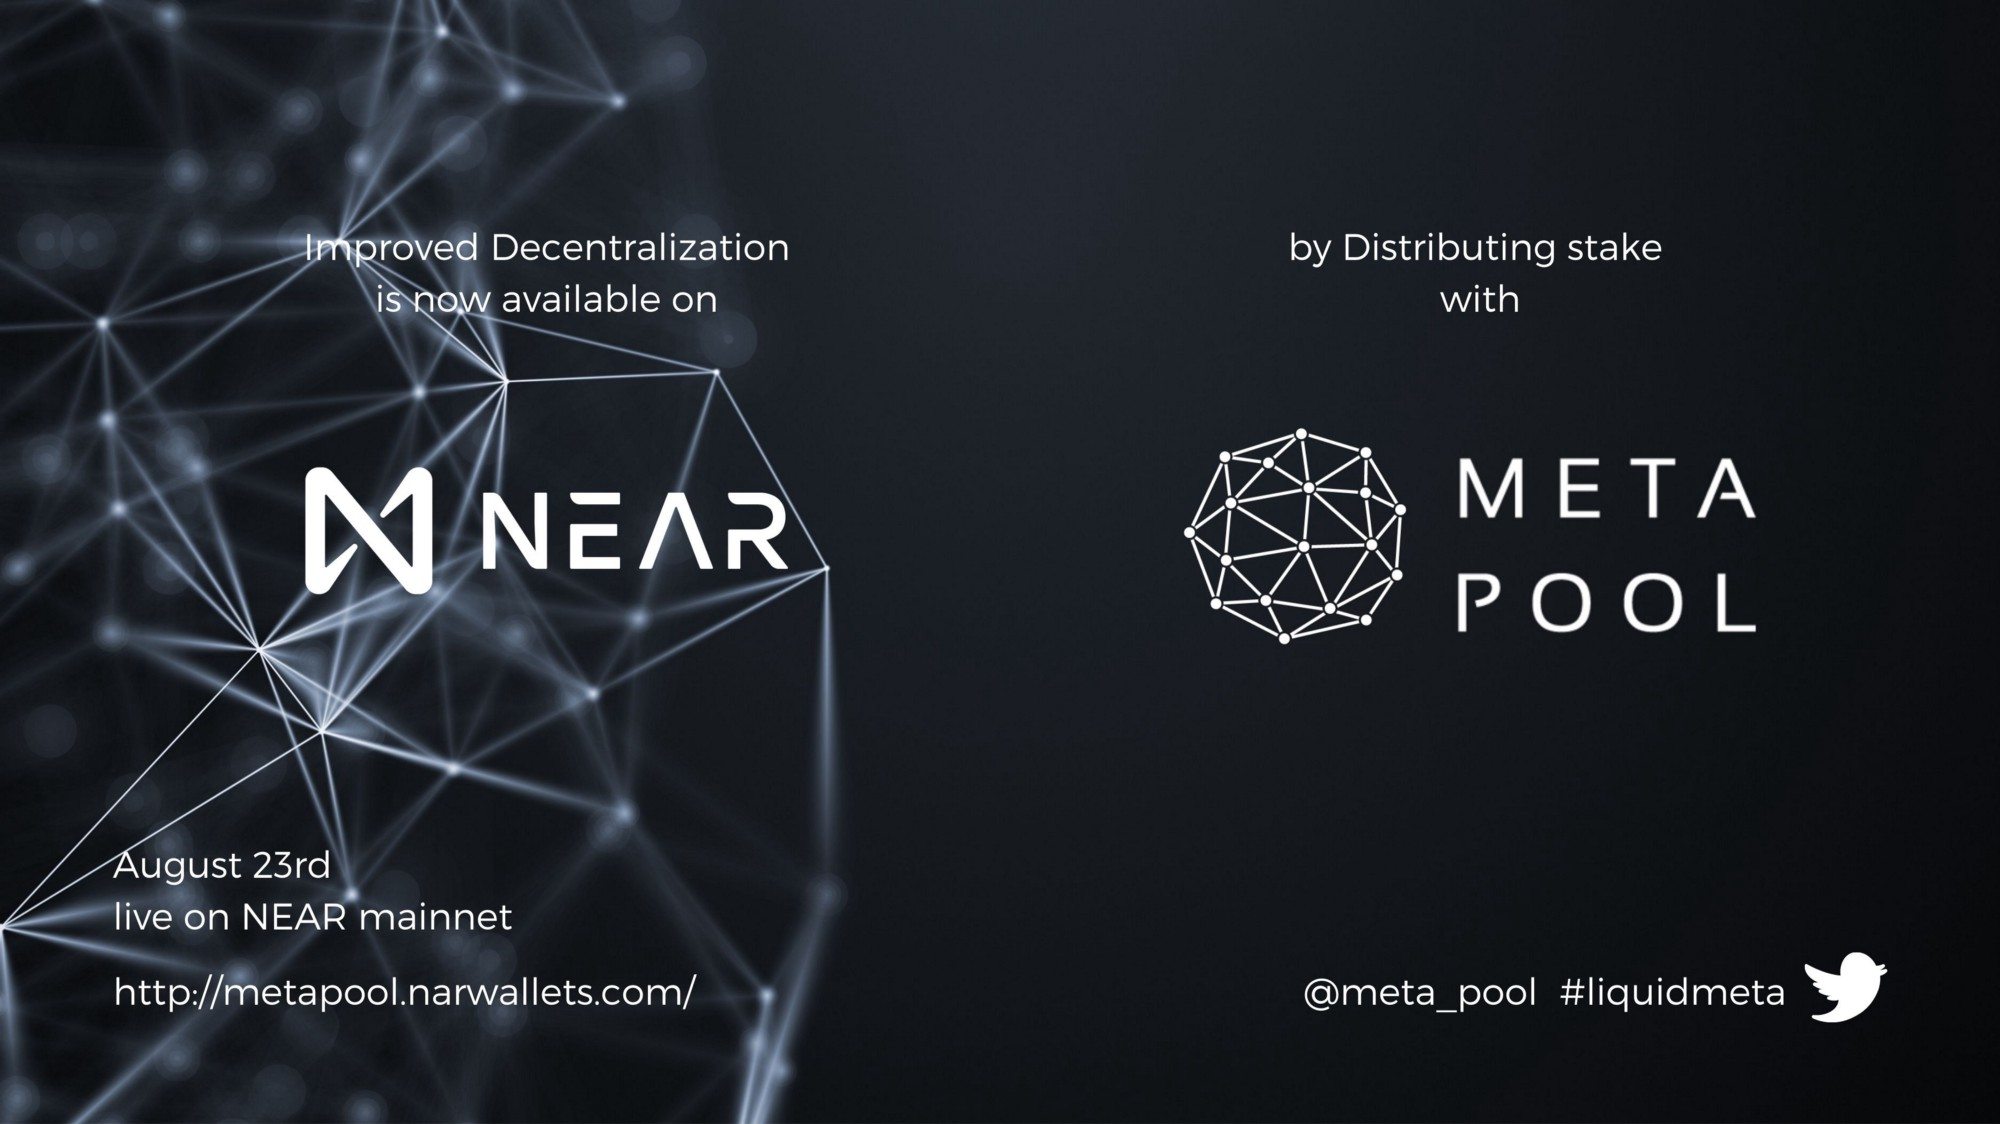 Meta Pool helps decentralize the NEAR blockchain and increase network security, through the distribution of staked NEAR across low-fee, high-performance validators below the top validators and making the network more censorship-resistant.